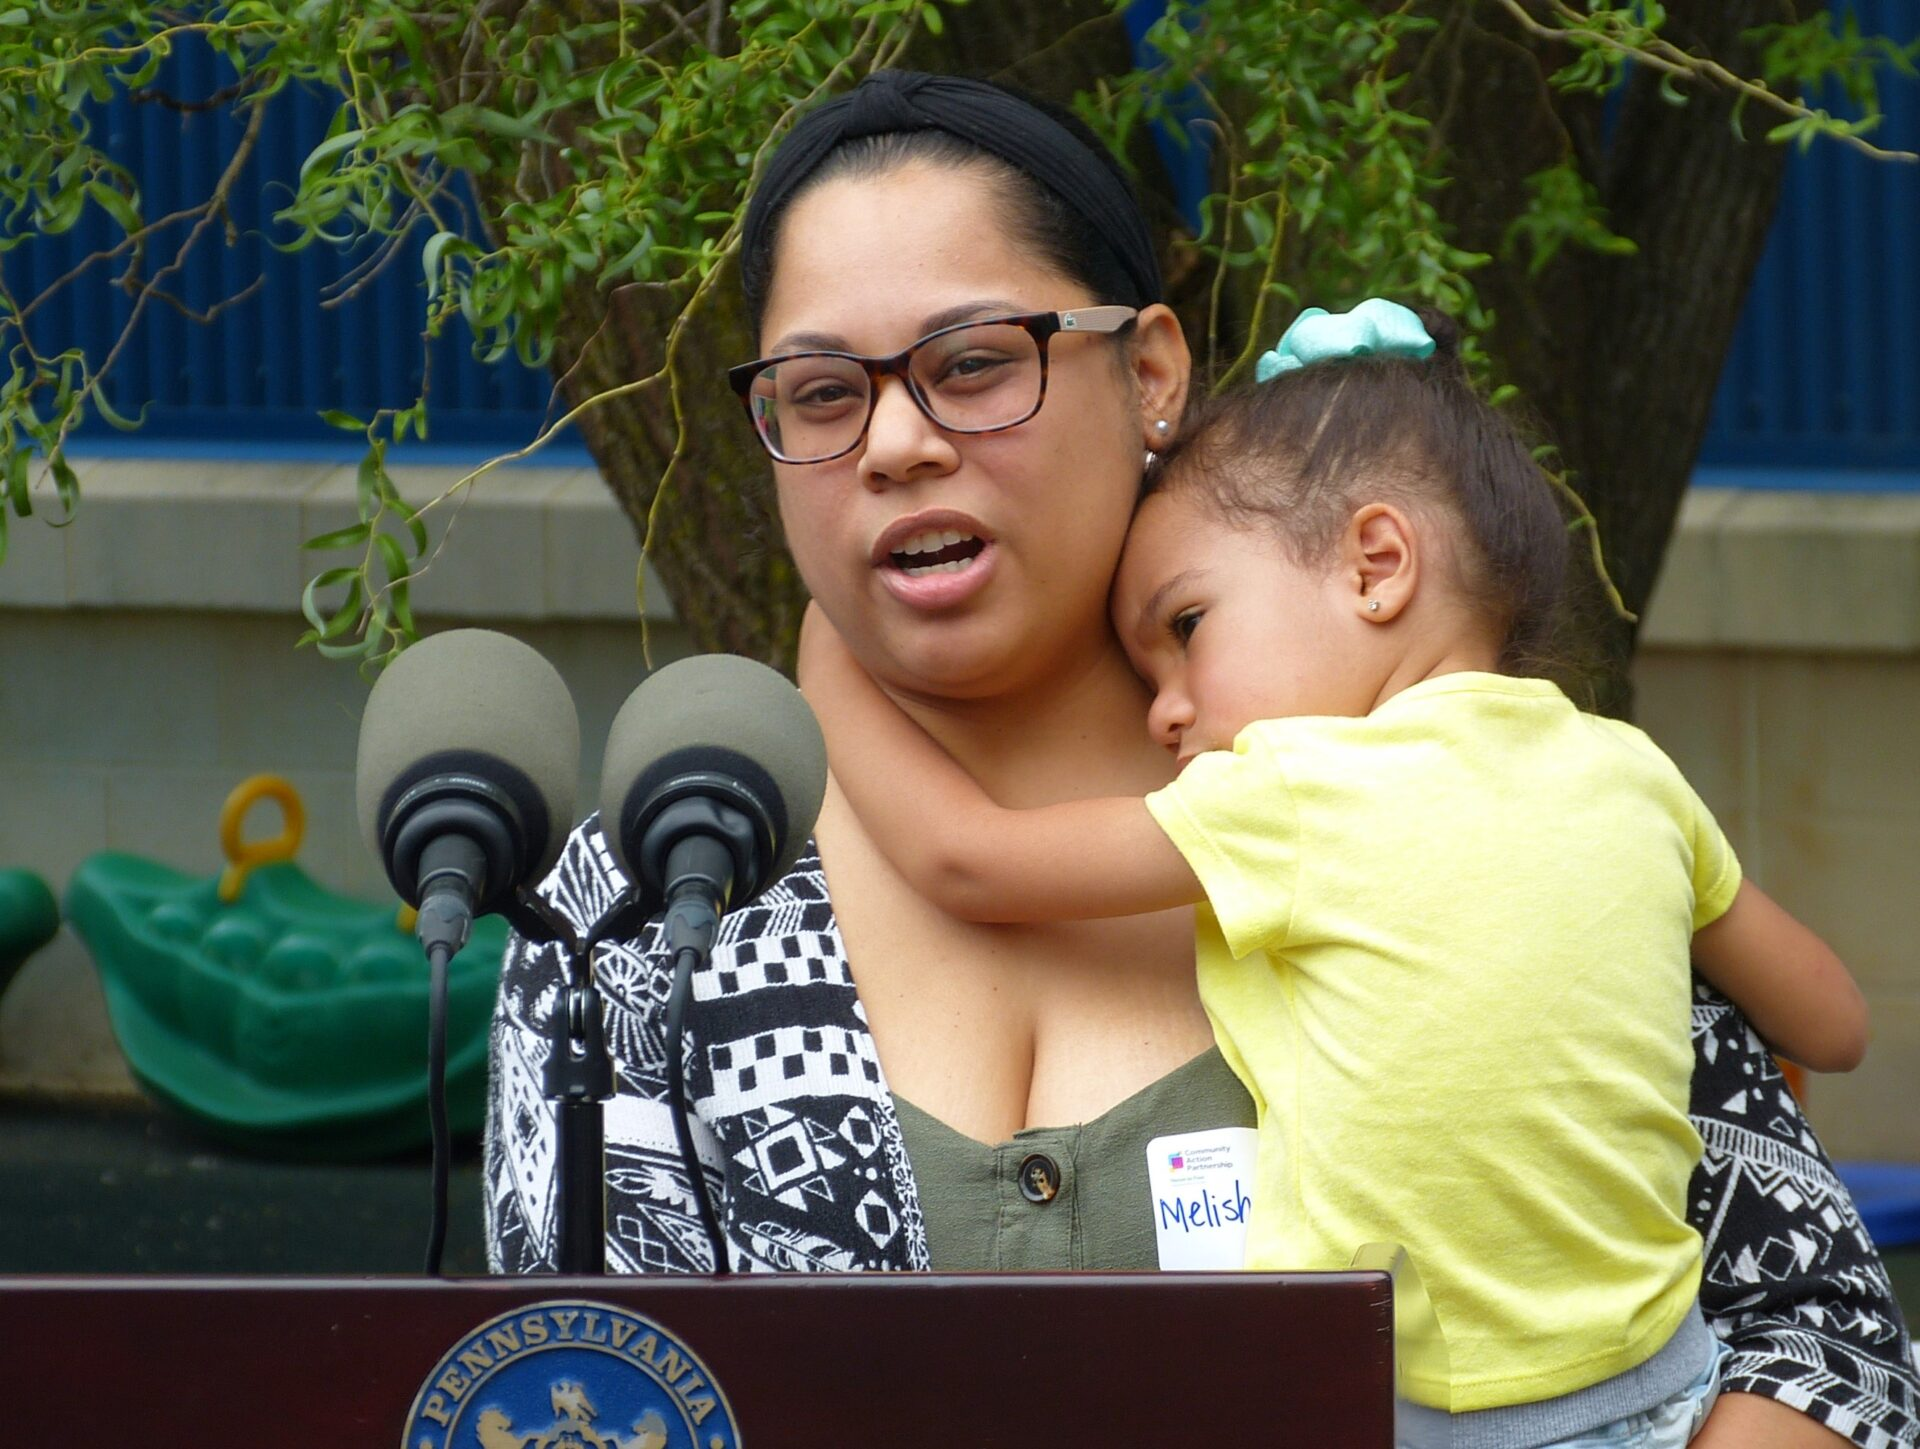 Melisha Melecio holds her daughter, Kamilah Montalvo, 4, while talking about early childhood education at the Community Action Partnership of Lancaster County on Thursday, July 8, 2021. (Photo: Tim Stuhldreher)